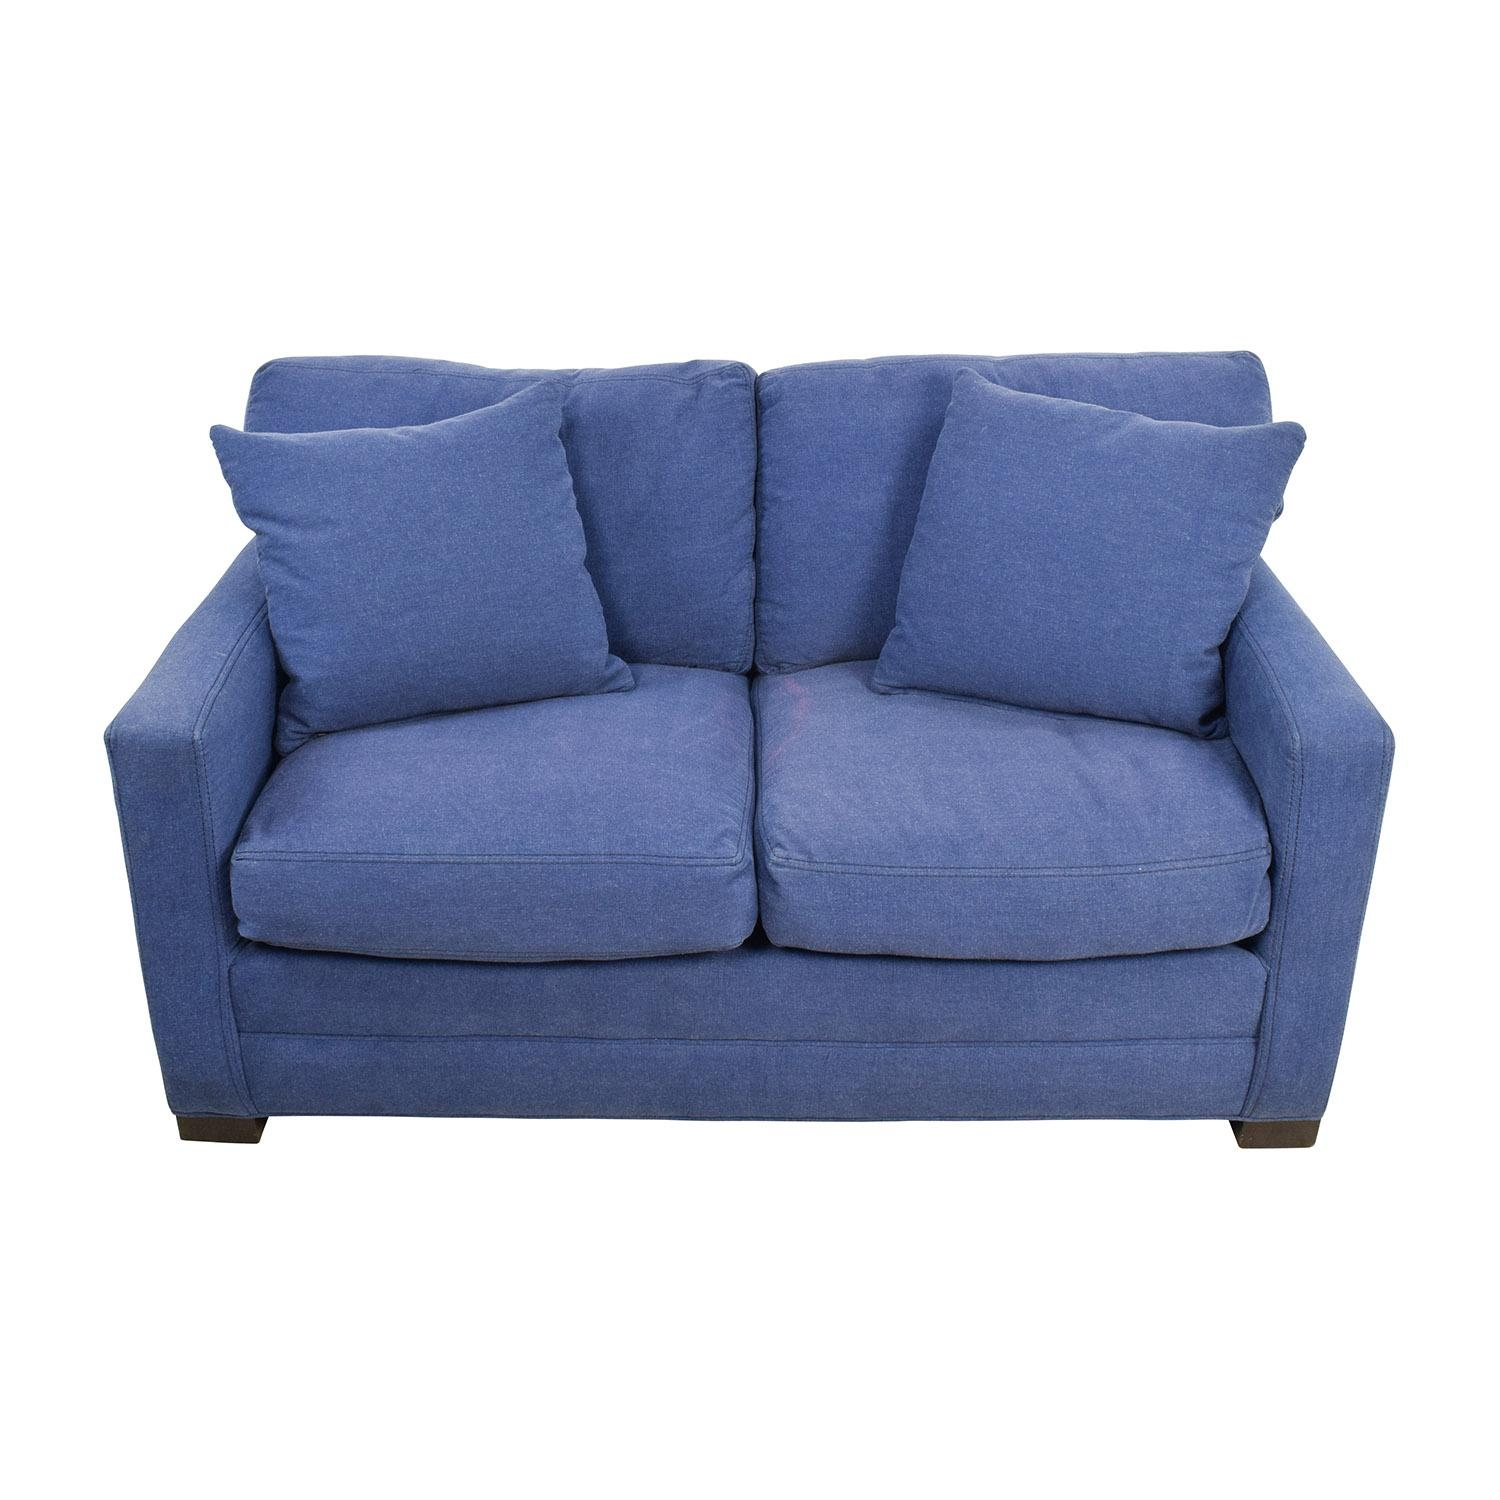 79% Off - Lee Industries Lee Industries Denim Blue Loveseat / Sofas in Denim Loveseats